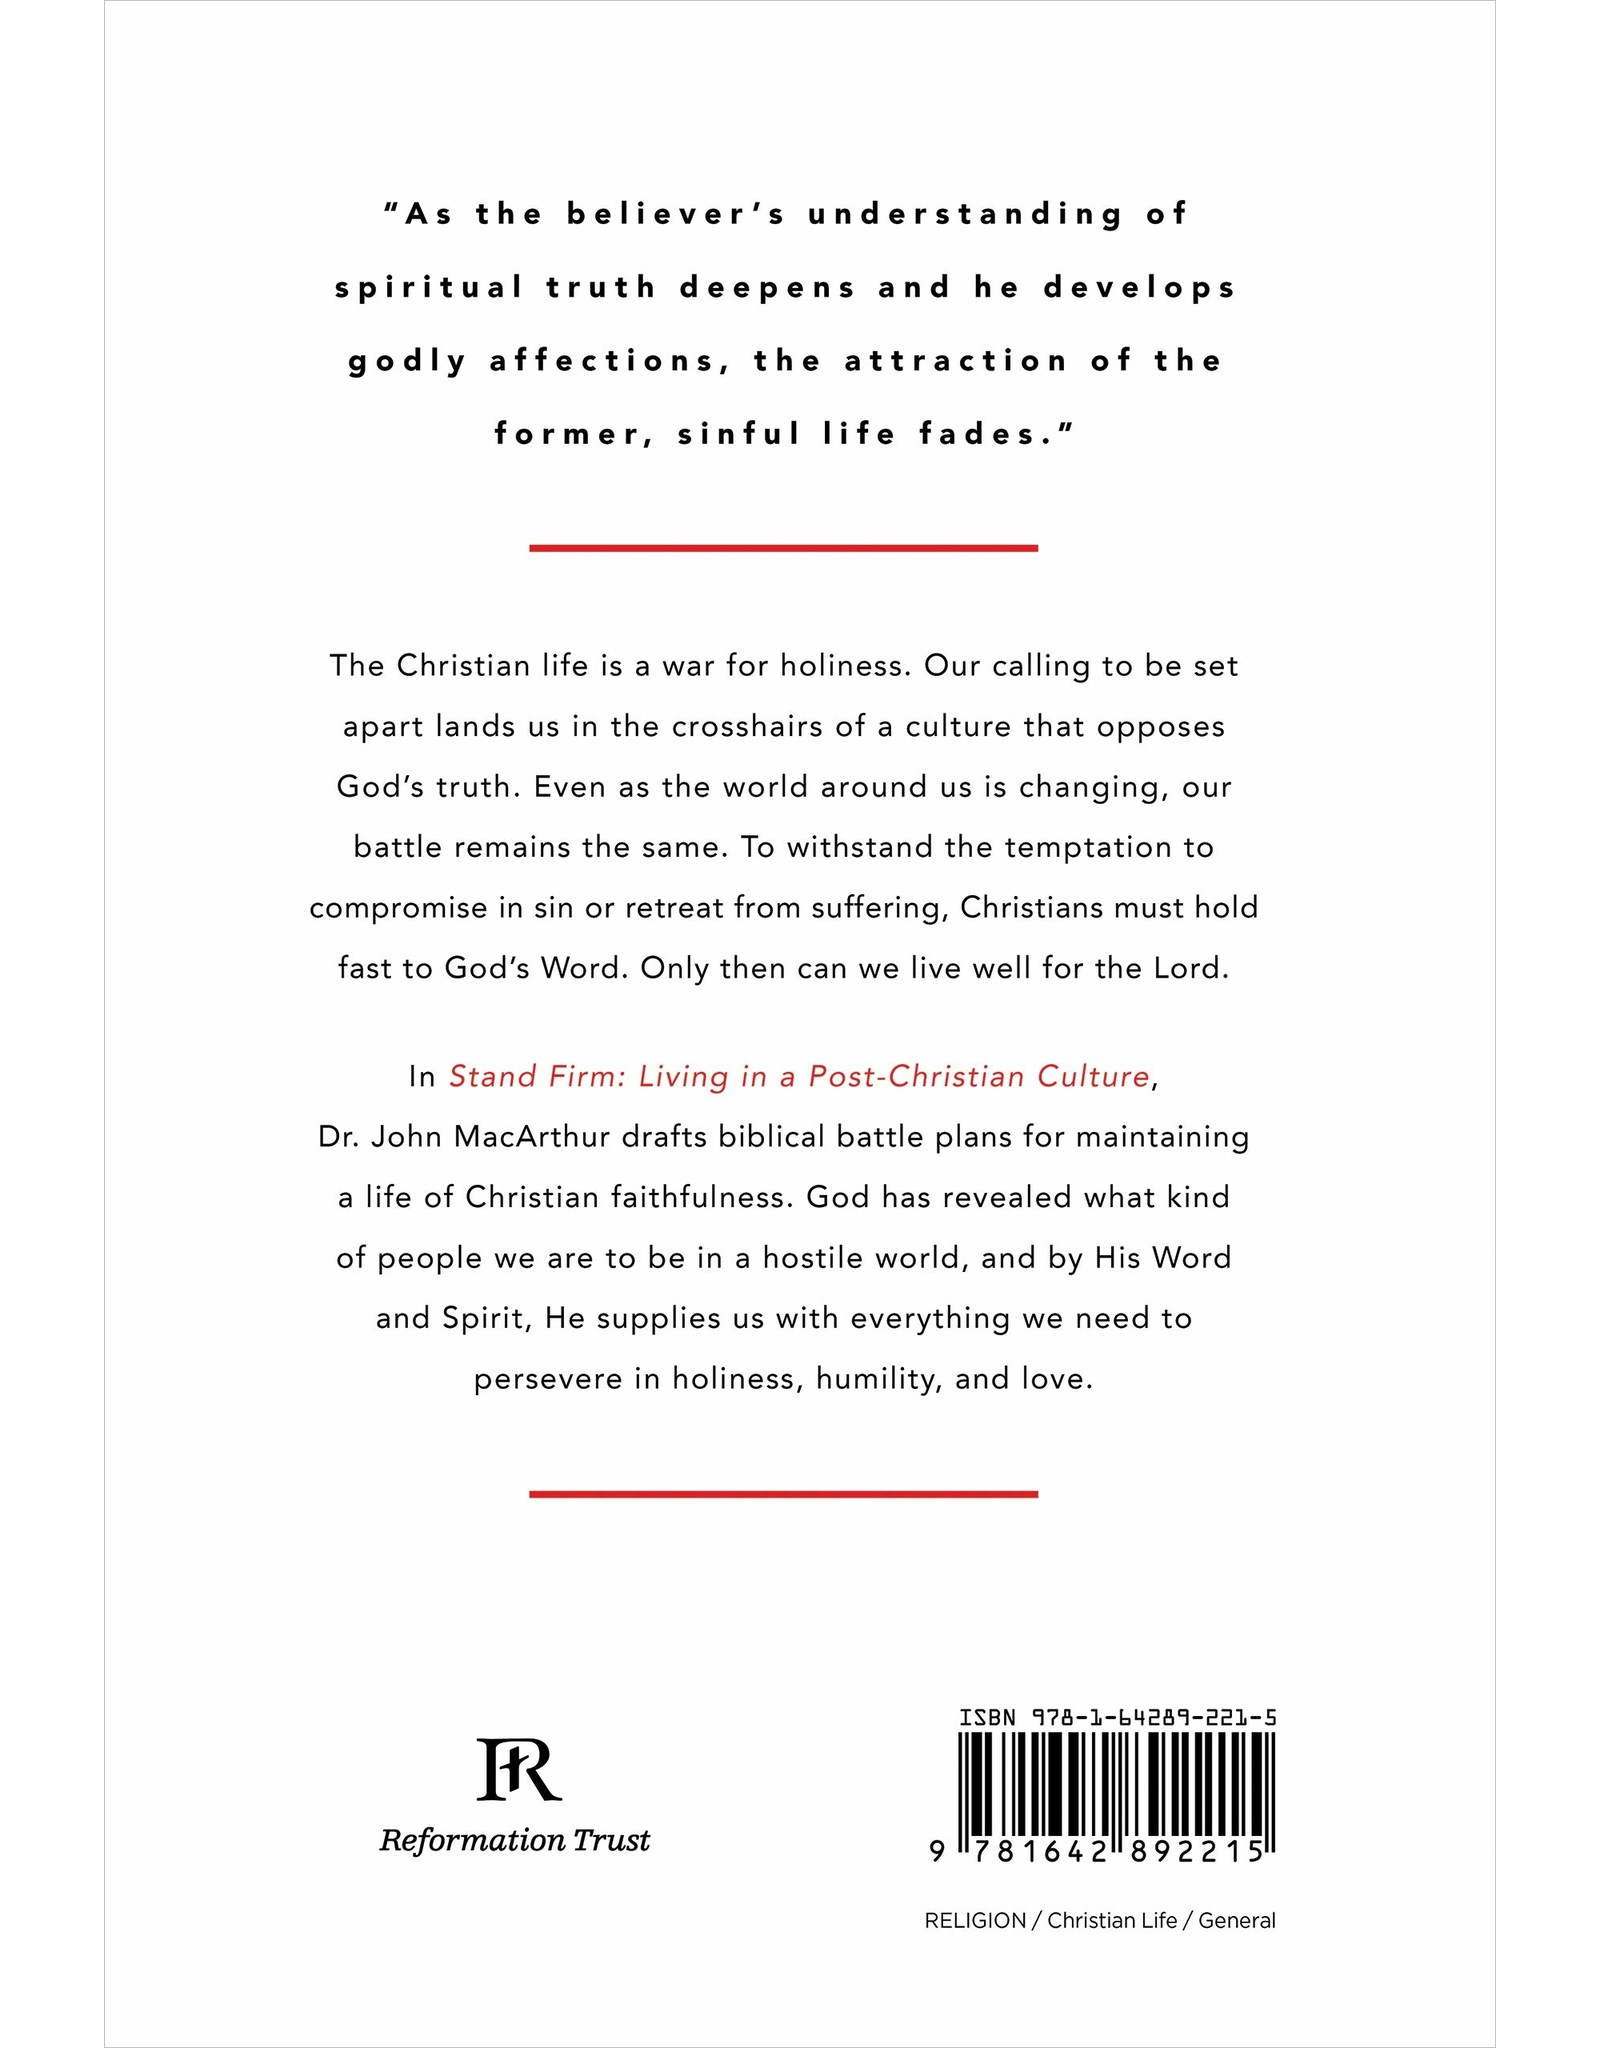 Ligonier / Reformation Trust Stand Firm: Living in a Post-Christian Culture